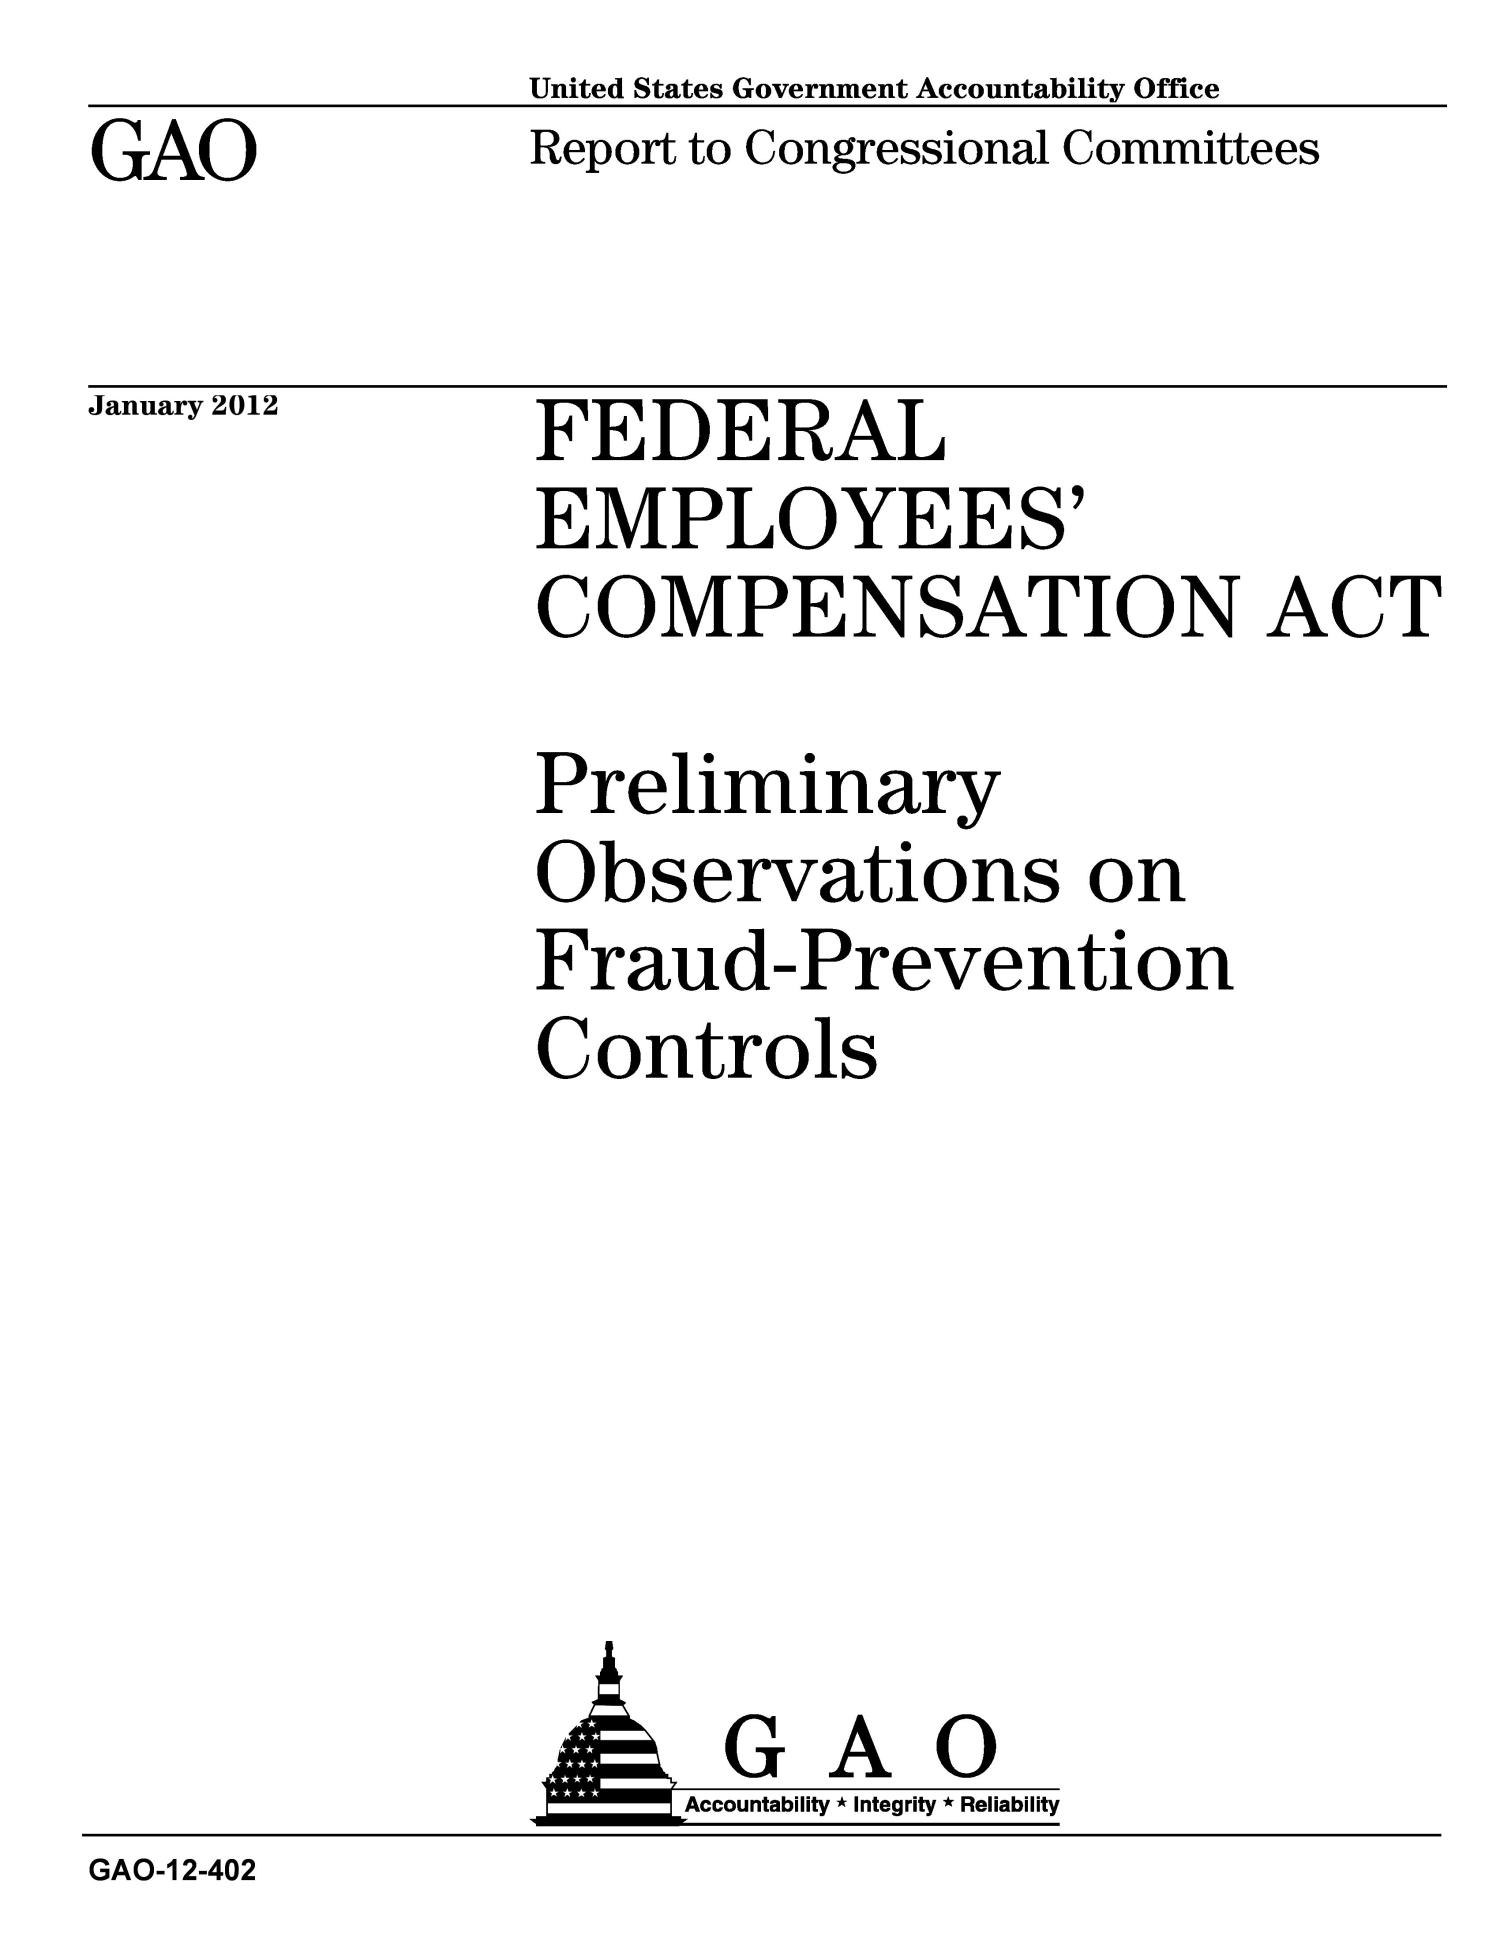 FEDERAL EMPLOYEES' COMPENSATION ACT: Preliminary Observations on Fraud-Prevention Controls                                                                                                      [Sequence #]: 1 of 21